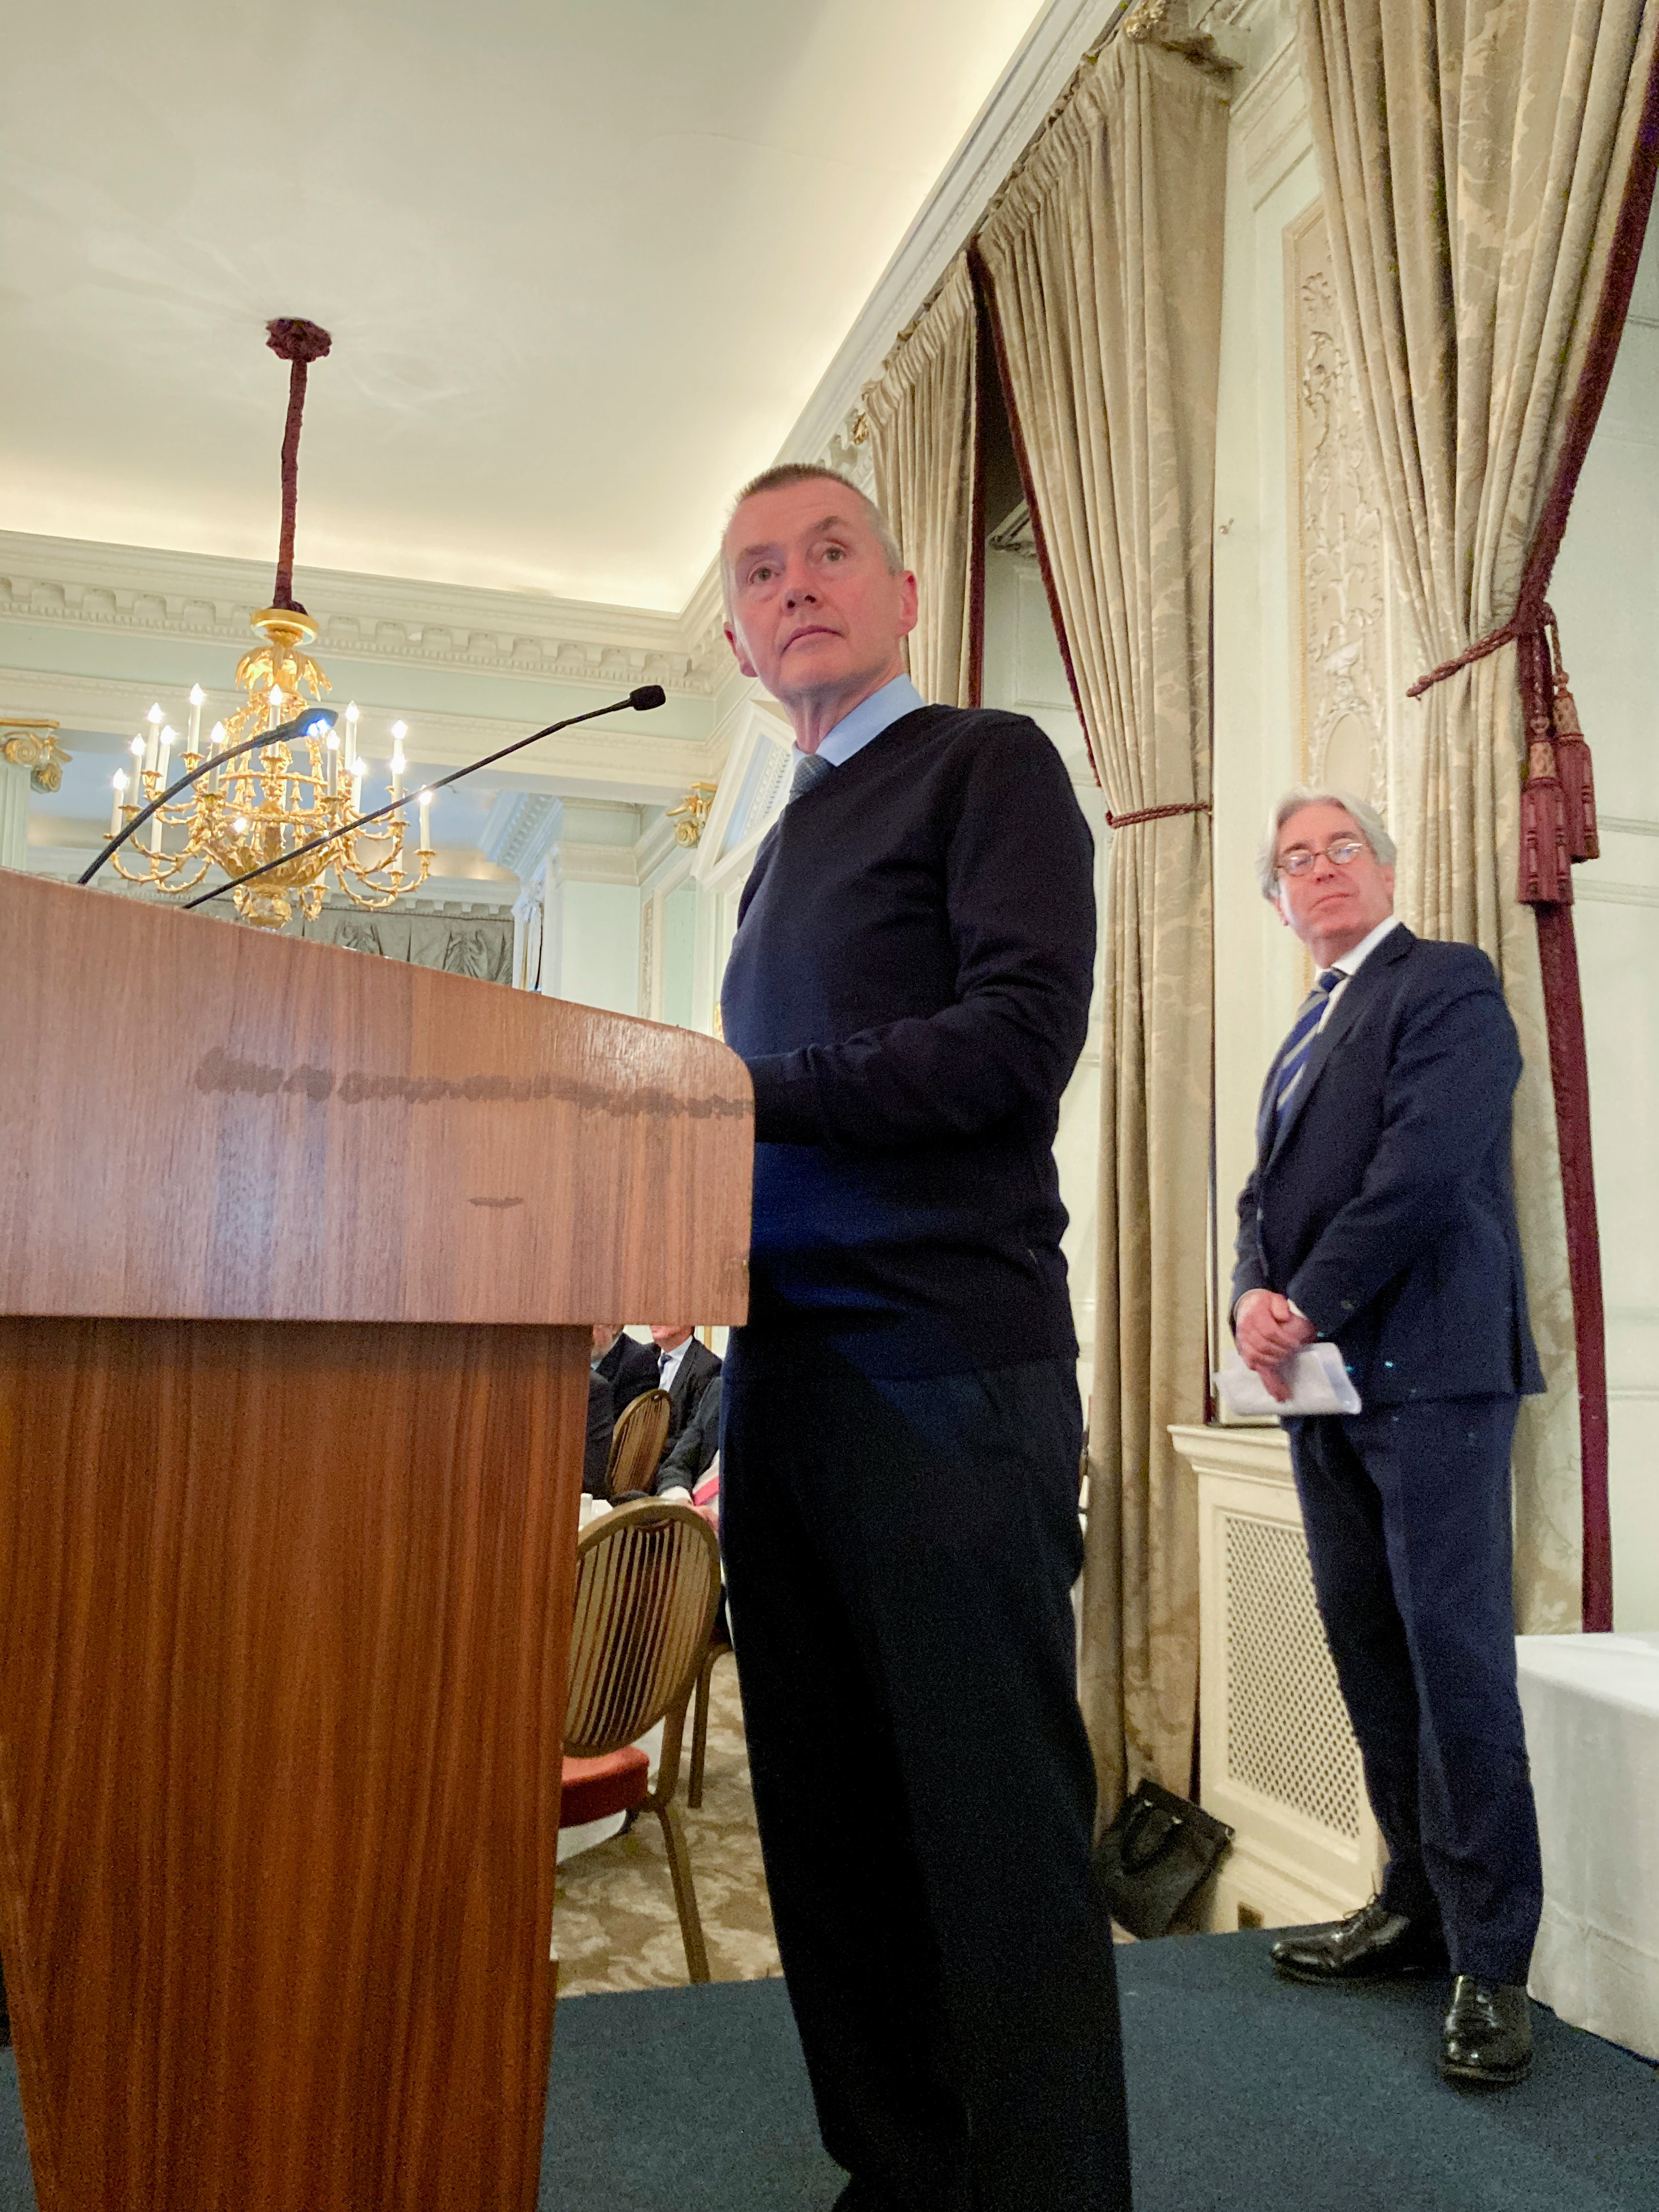 IATA's Director General Willie Walsh speaks at an Aviation Club U.K. event in central London, Britain, October 13, 2021. REUTERS/Sarah Young